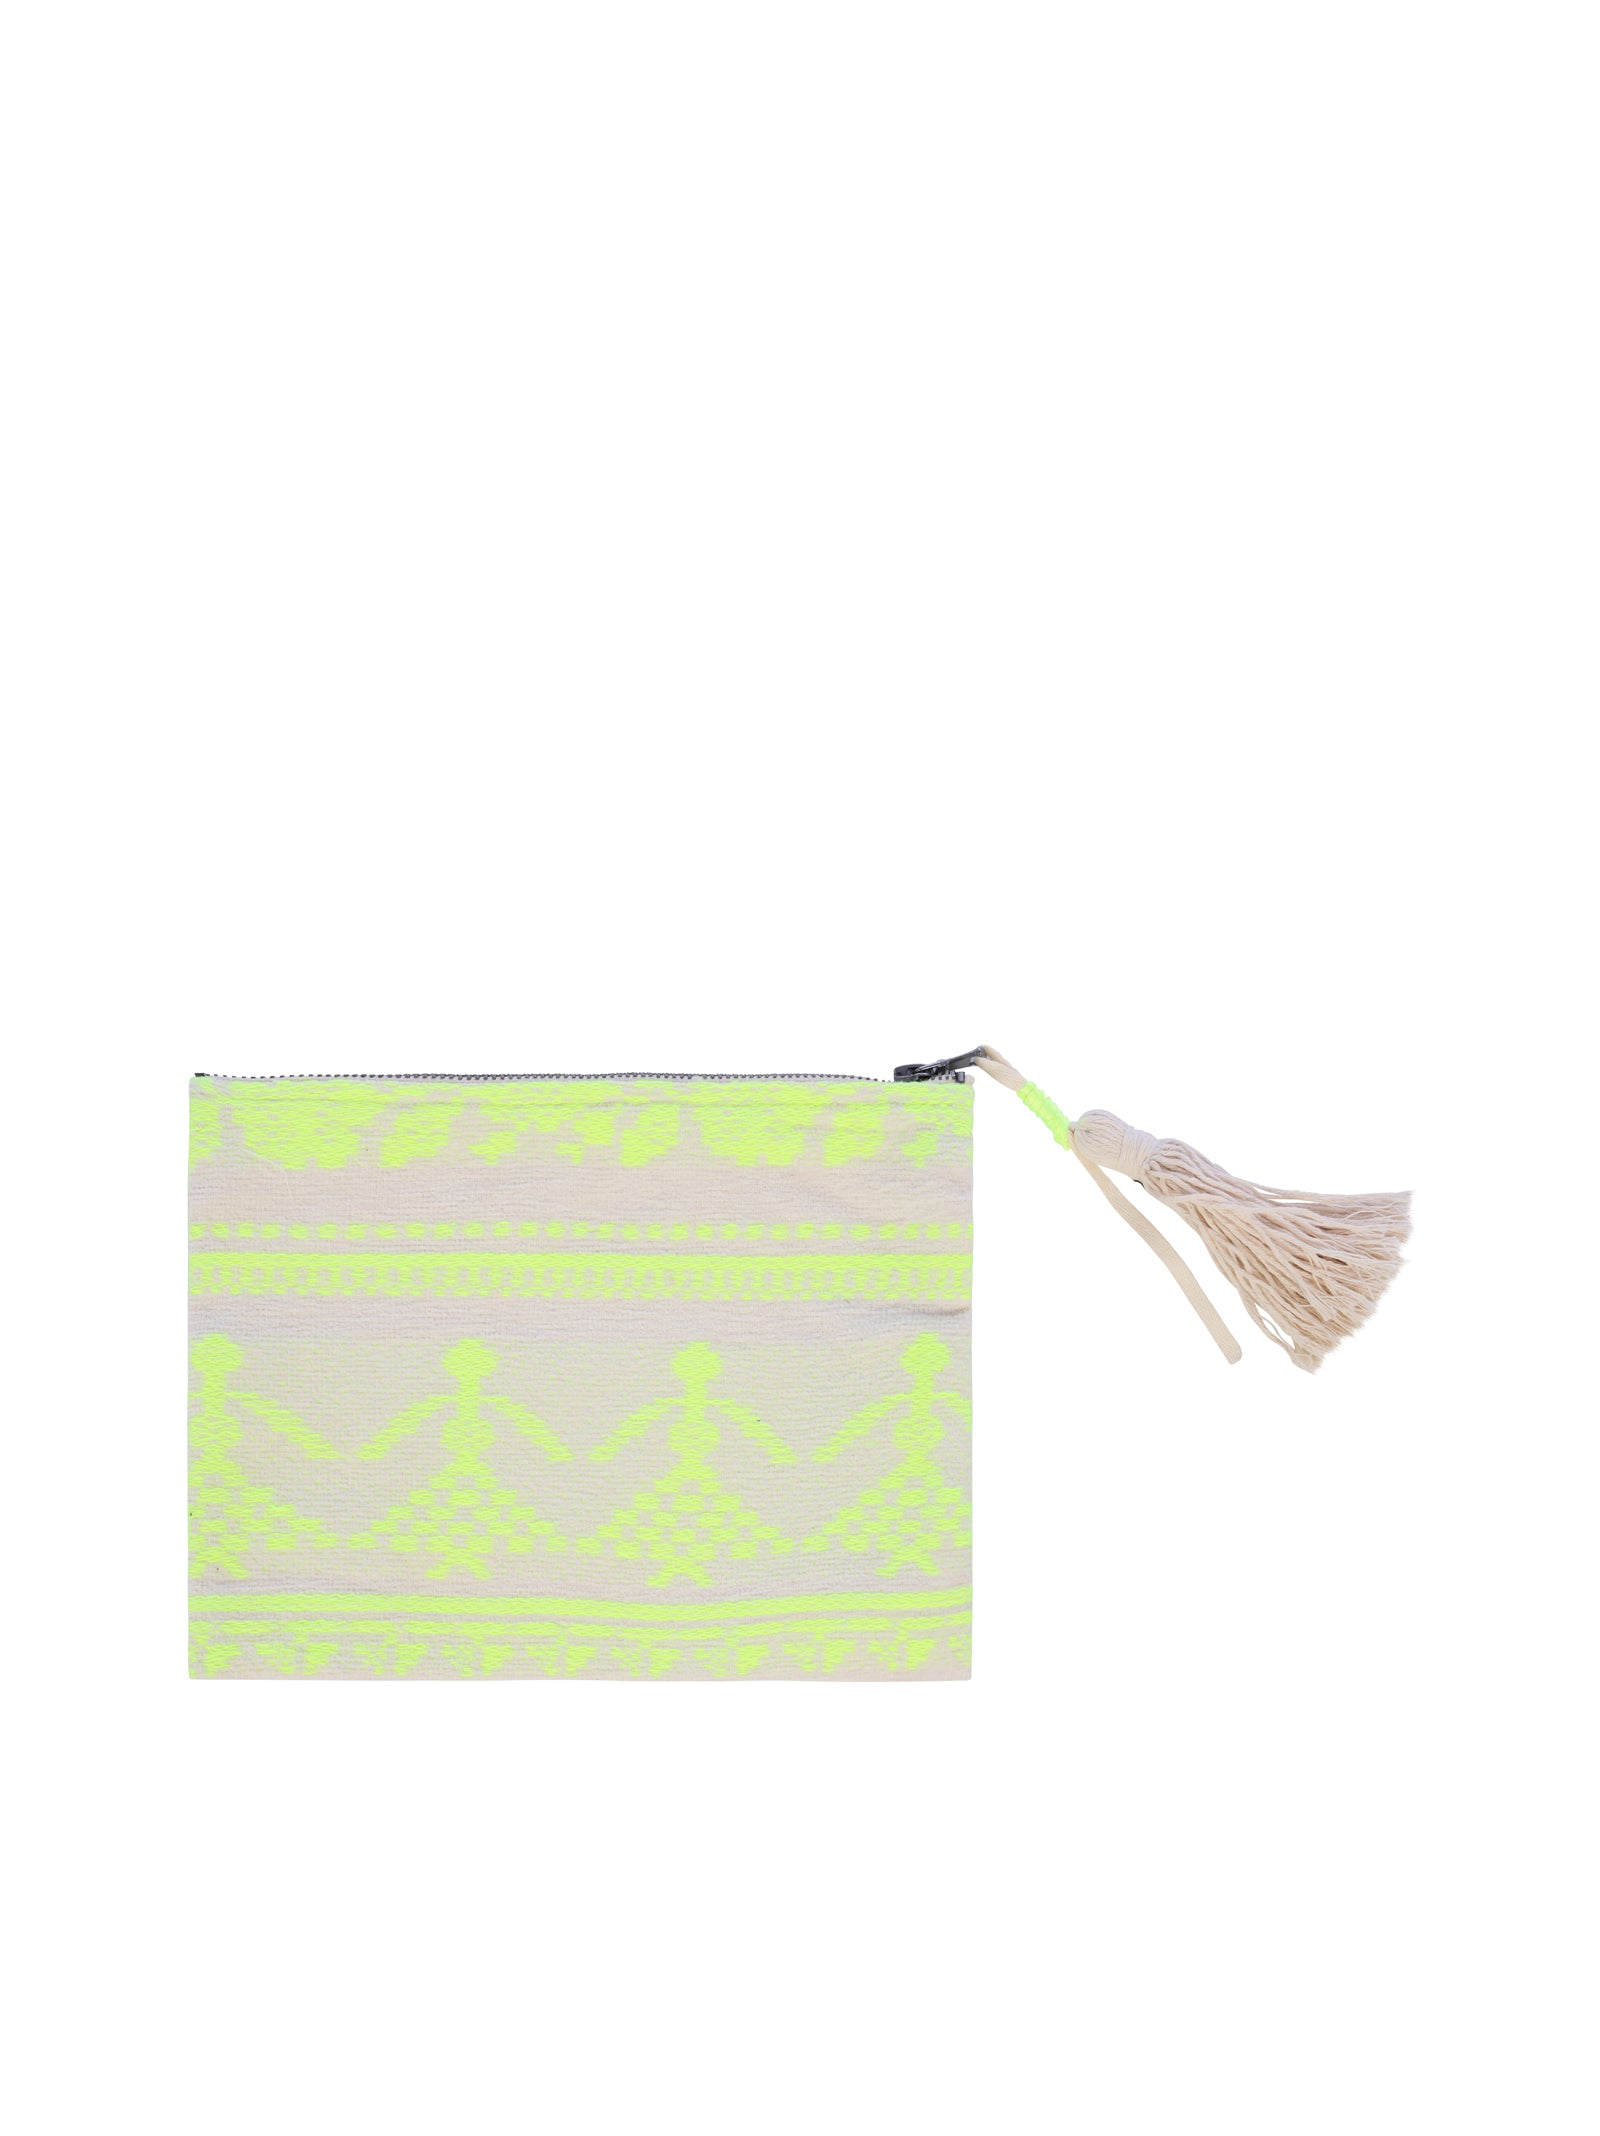 cotton CLUTCH with zip